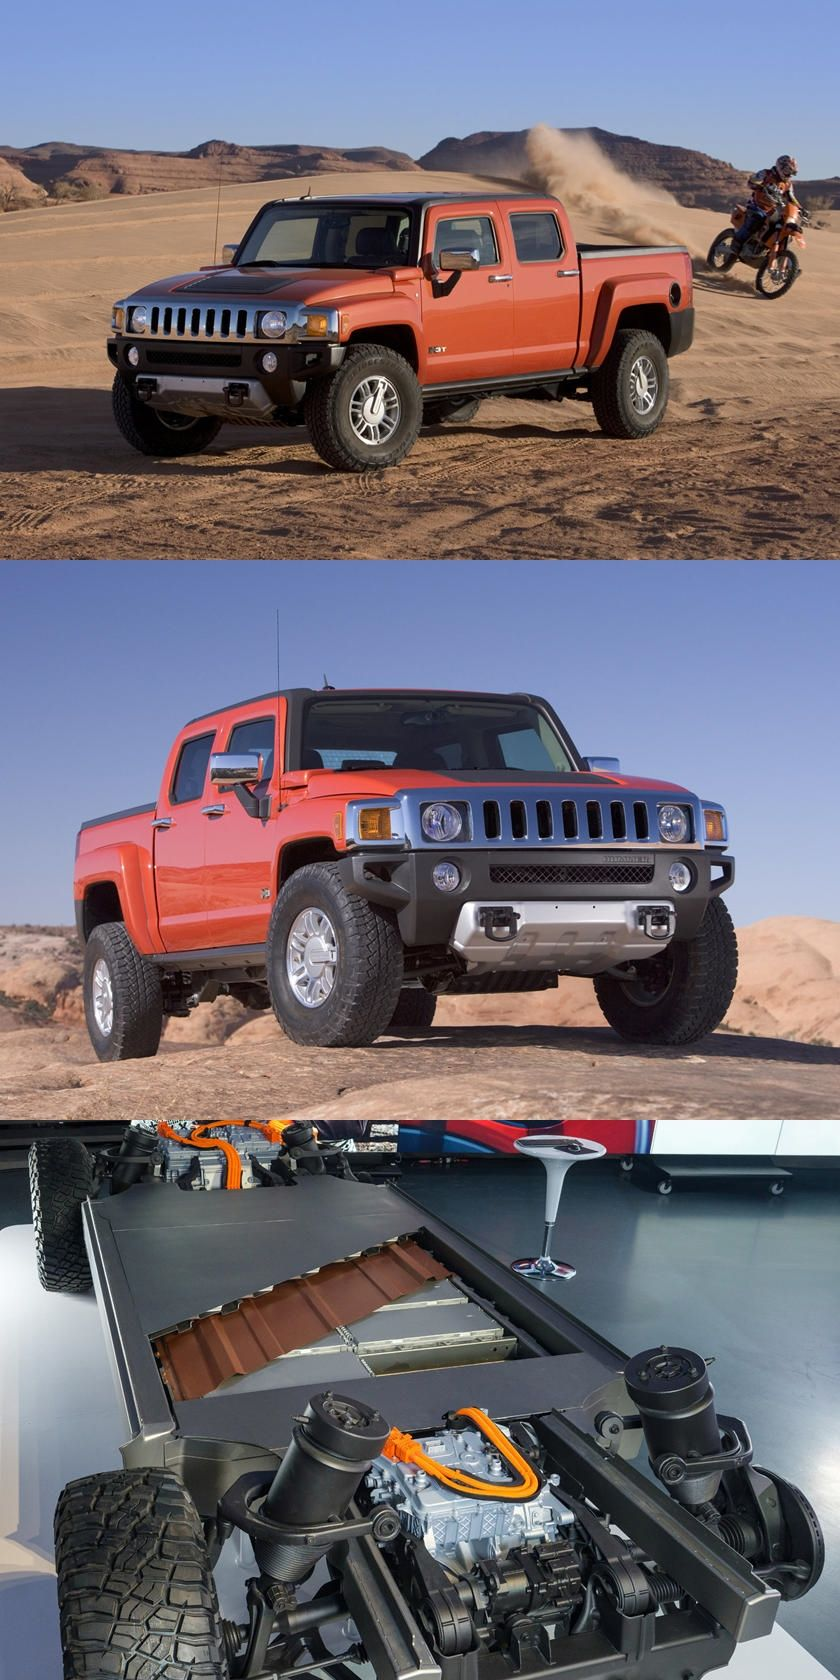 Crucial Gmc Hummer Ev Details Exposed Gm S Electric Hummer Will Have A Four Corner Independent Suspension With Air S In 2020 Gmc Hummer Shipping Container House Plans